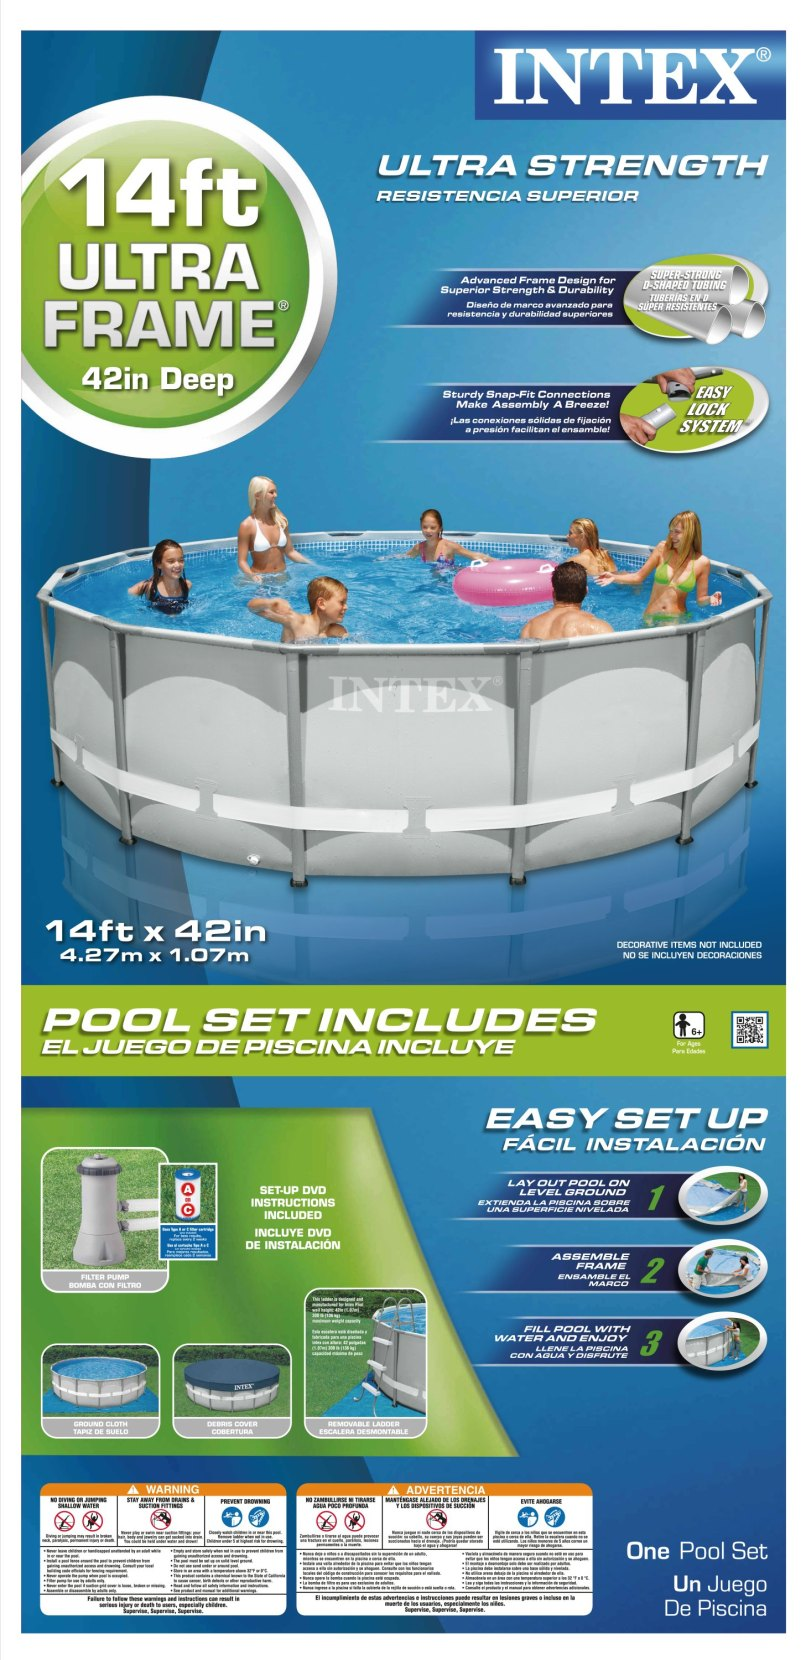 Intex 14ft X 42in Ultra Frame Pool Set With Filter Pump | Allframes5.org